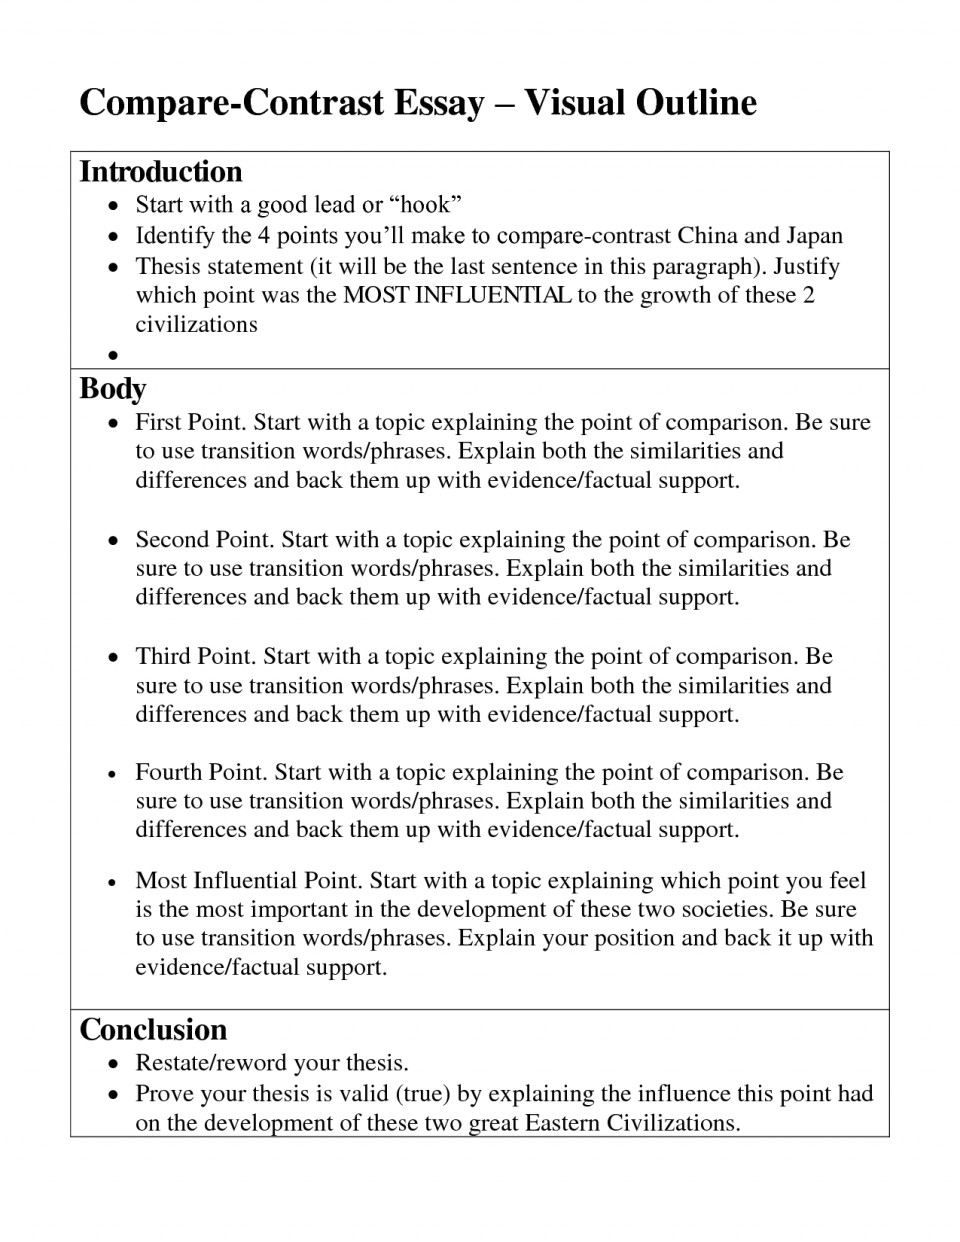 005 How To Write Compare And Contrast Essay Outstanding A Outline Comparison Ppt Middle School 960